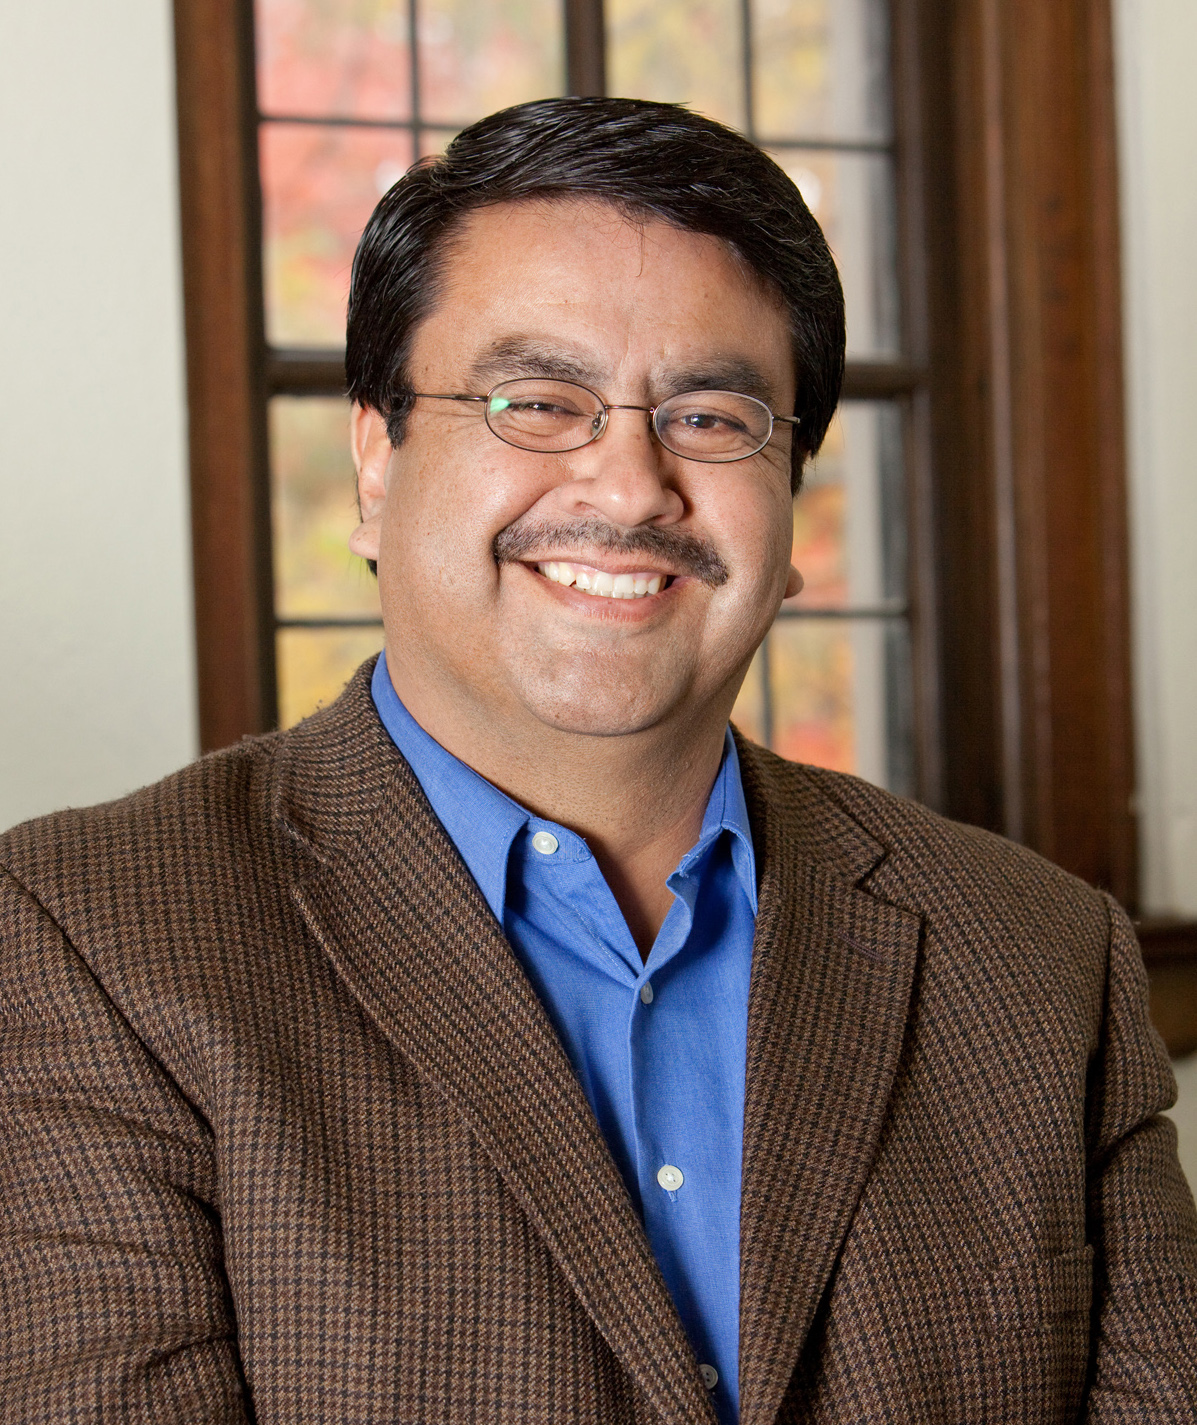 Dr. David Ramirez, Speaker for 2012 Craven Wilson Lectures at Perkins School of Theology, Southern Methodist University